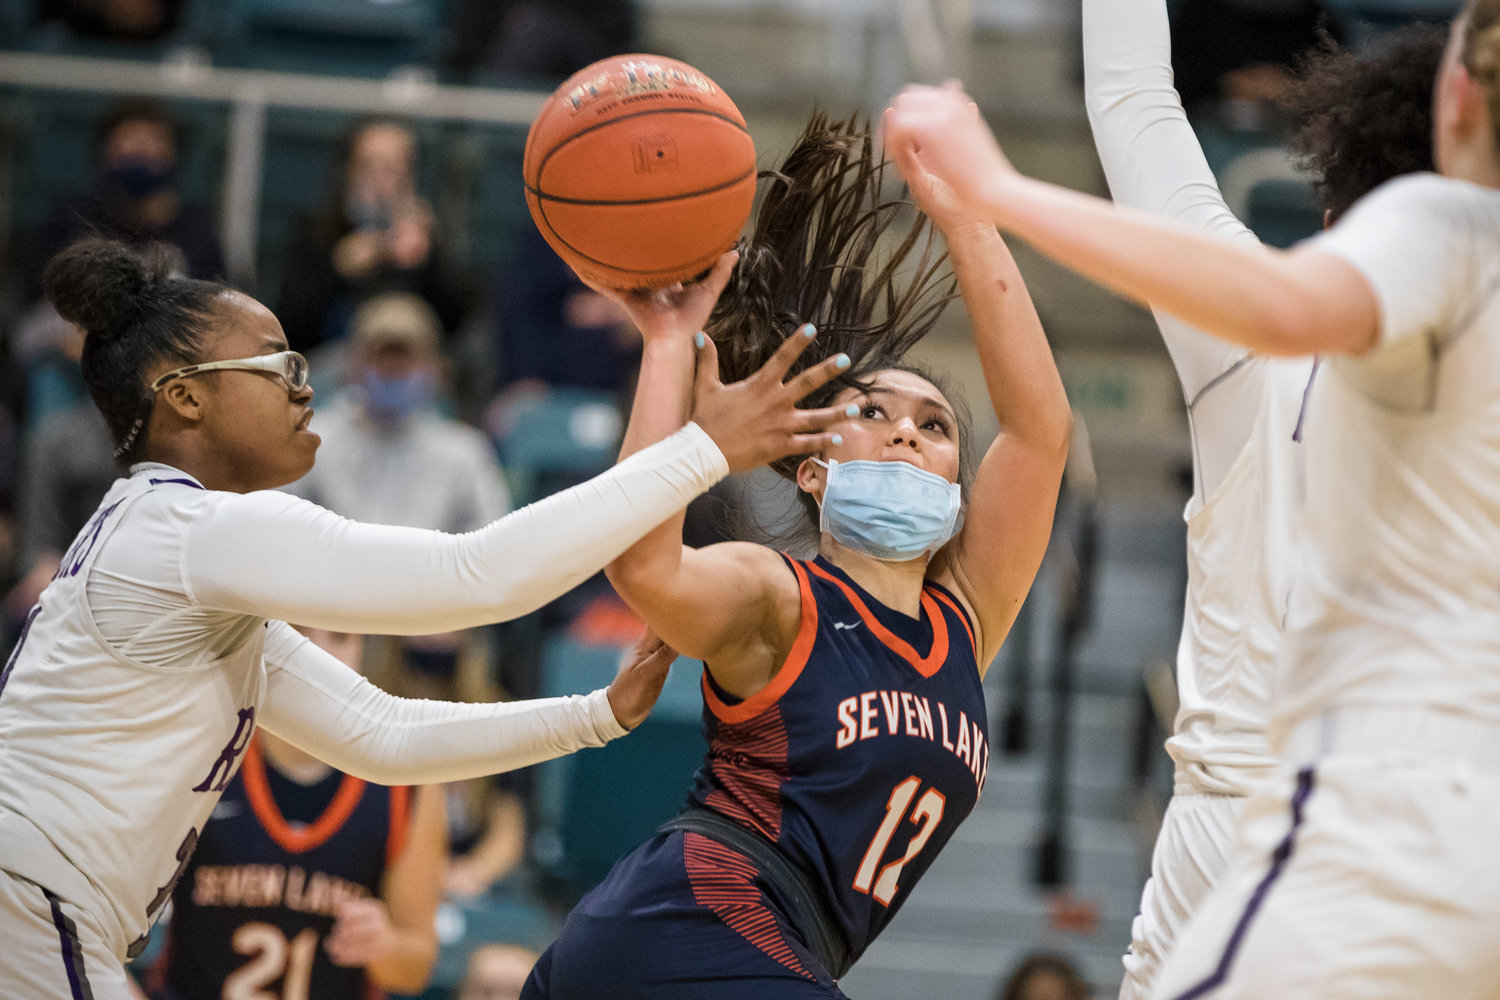 Seven Lakes' Cailyn Tucker (12) shoots a runner in the lane during Thursday's Region III Class 6A bi-district playoff game against Fort Bend Ridge Point at the Merrell Center in Katy.